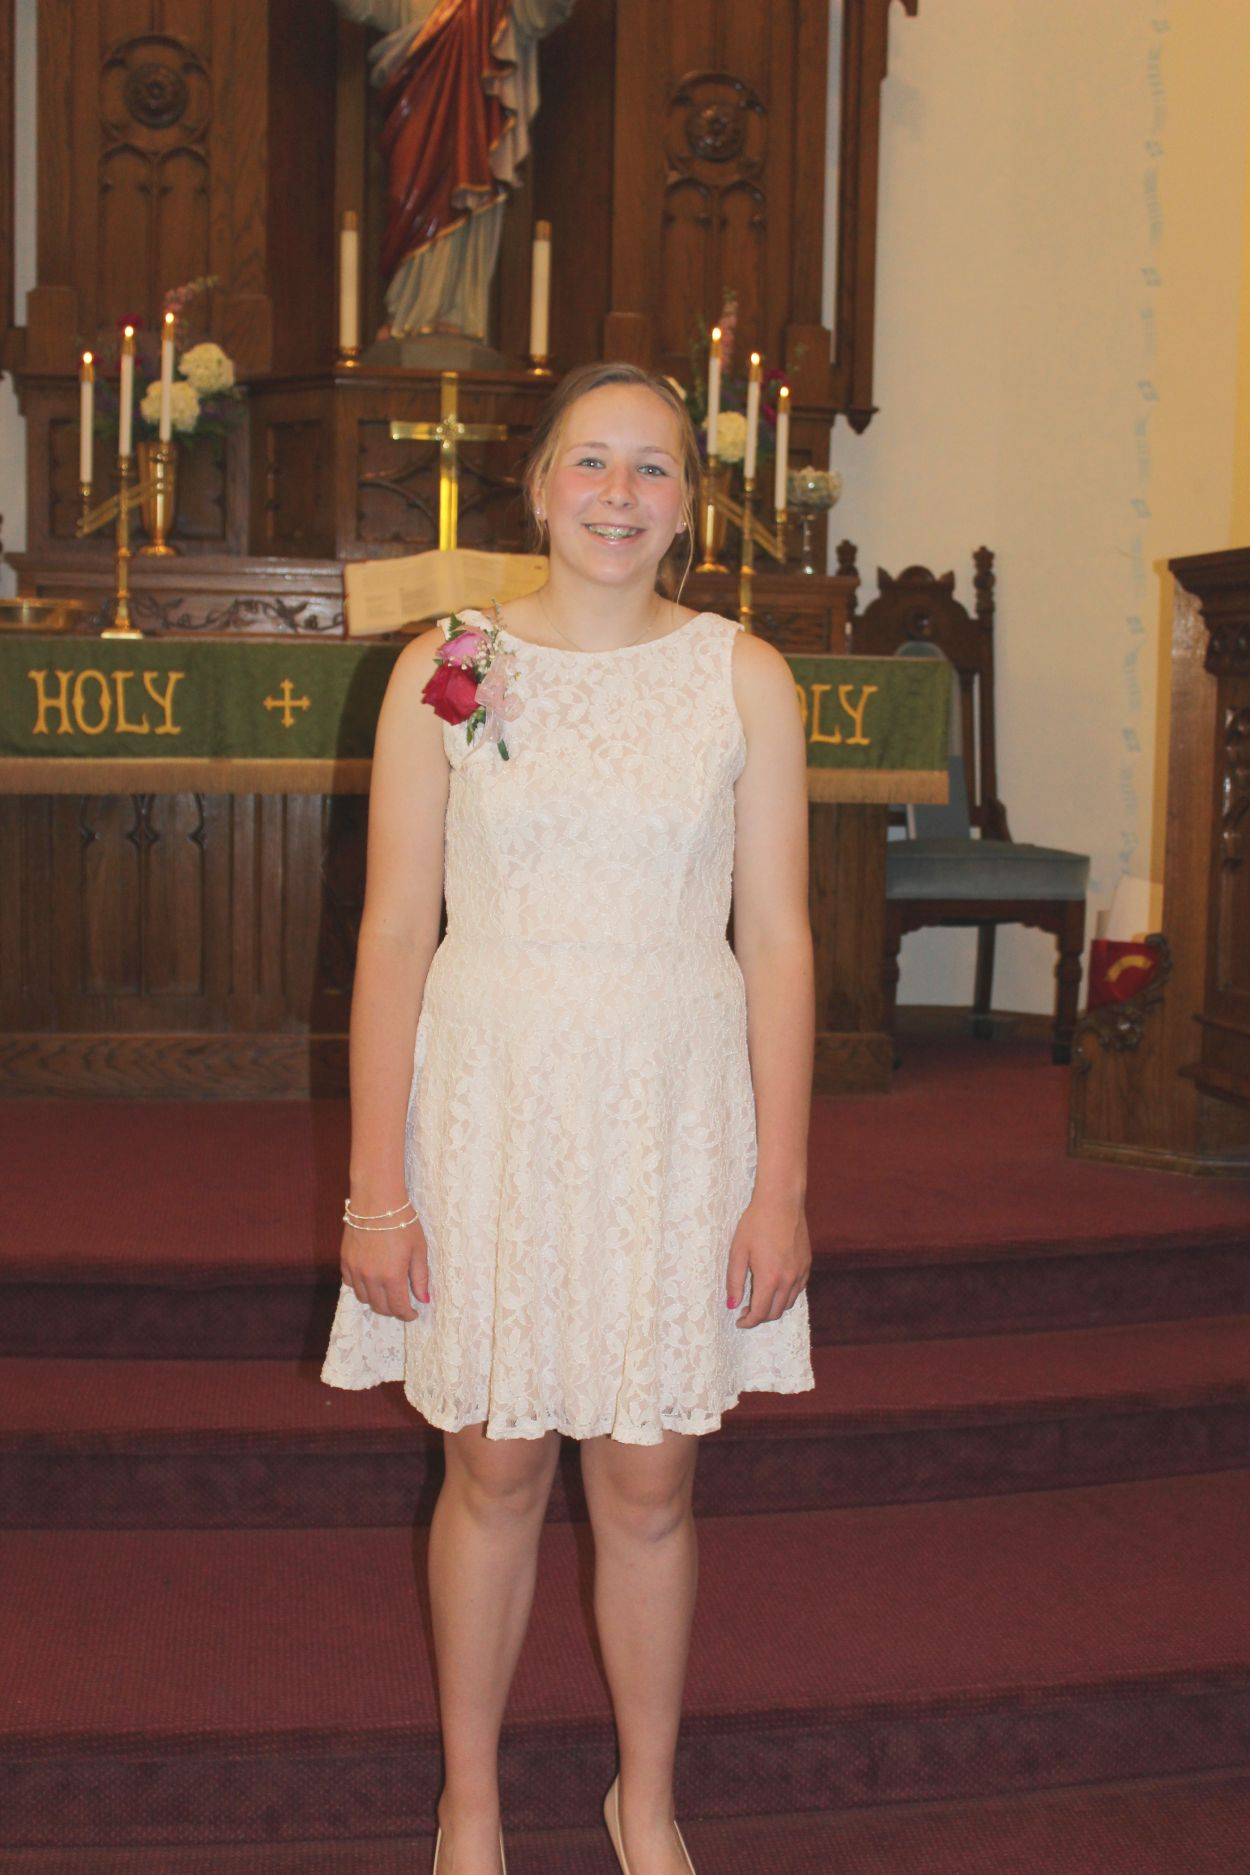 Sophia Miller Confirmation, 29 May 2016.